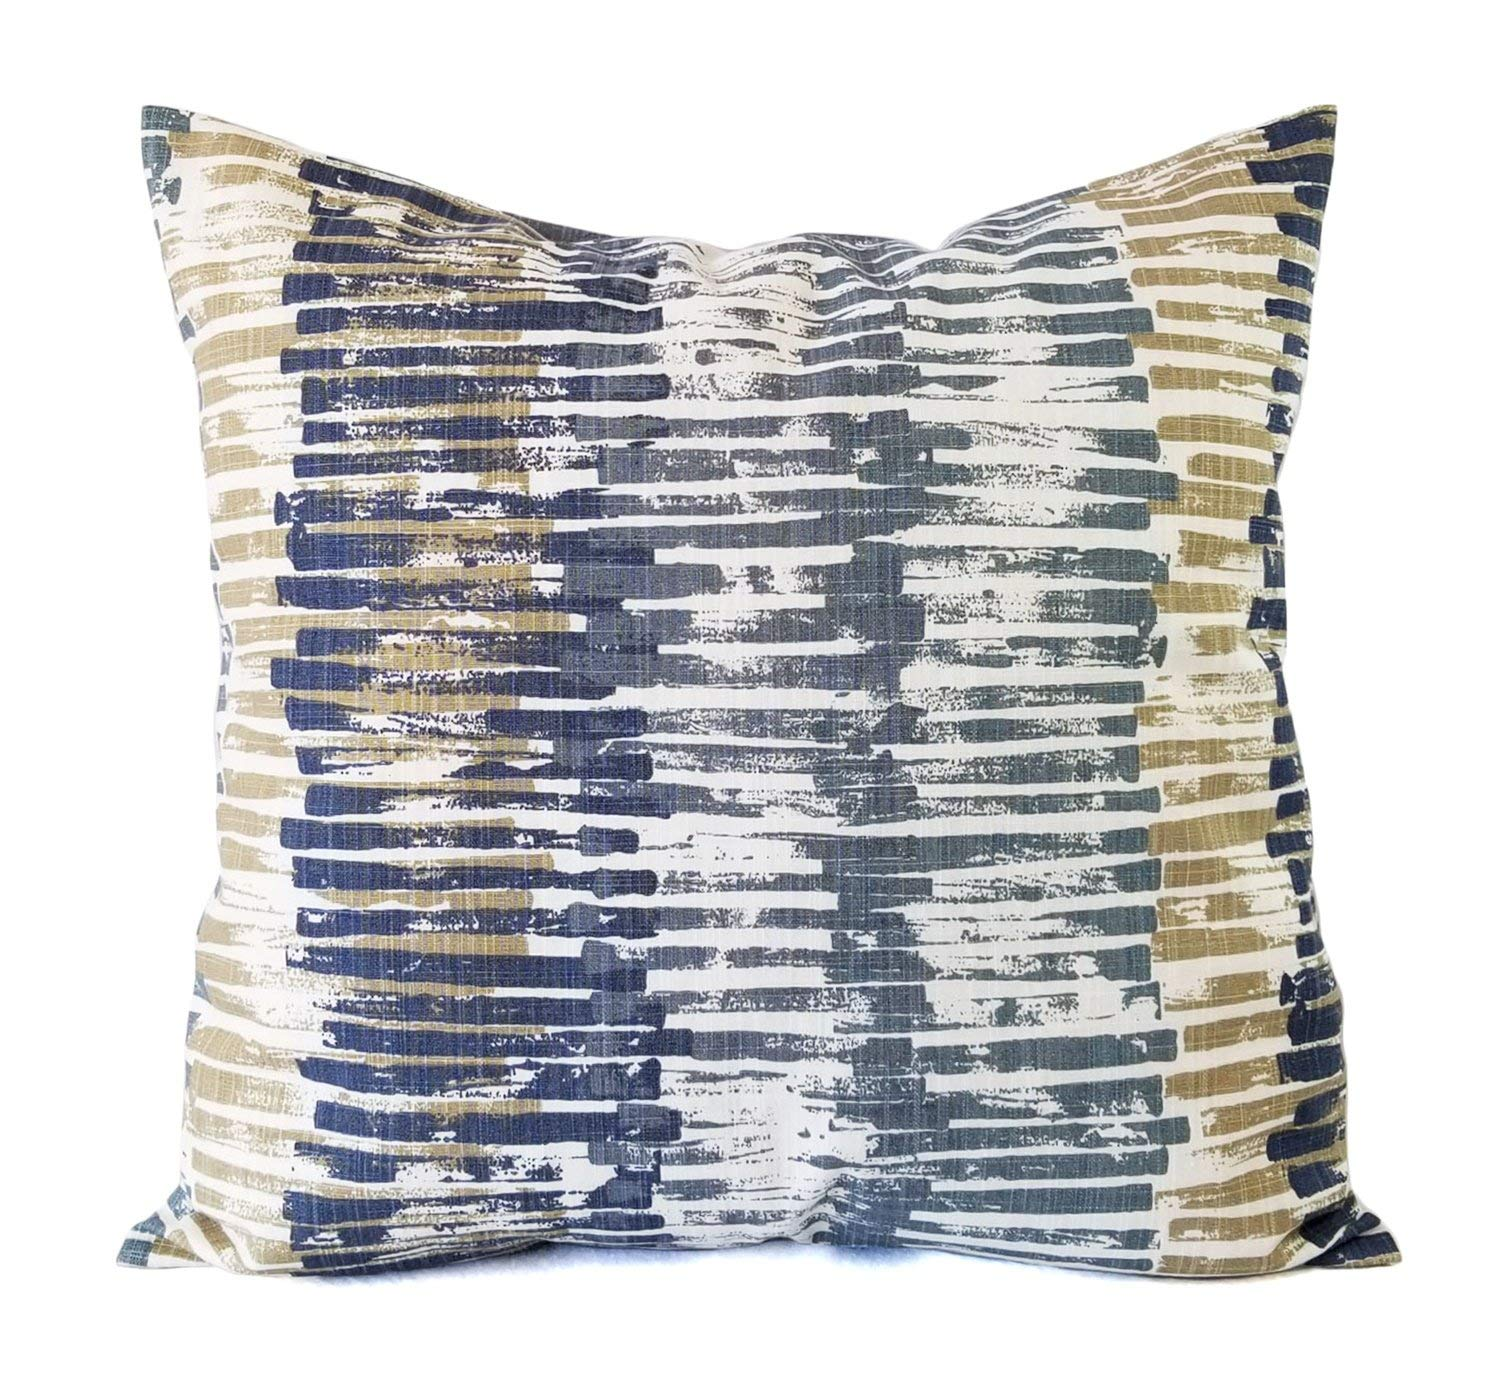 Cheap 20 X 20 Pillow Cover Find 20 X 20 Pillow Cover Deals On Line